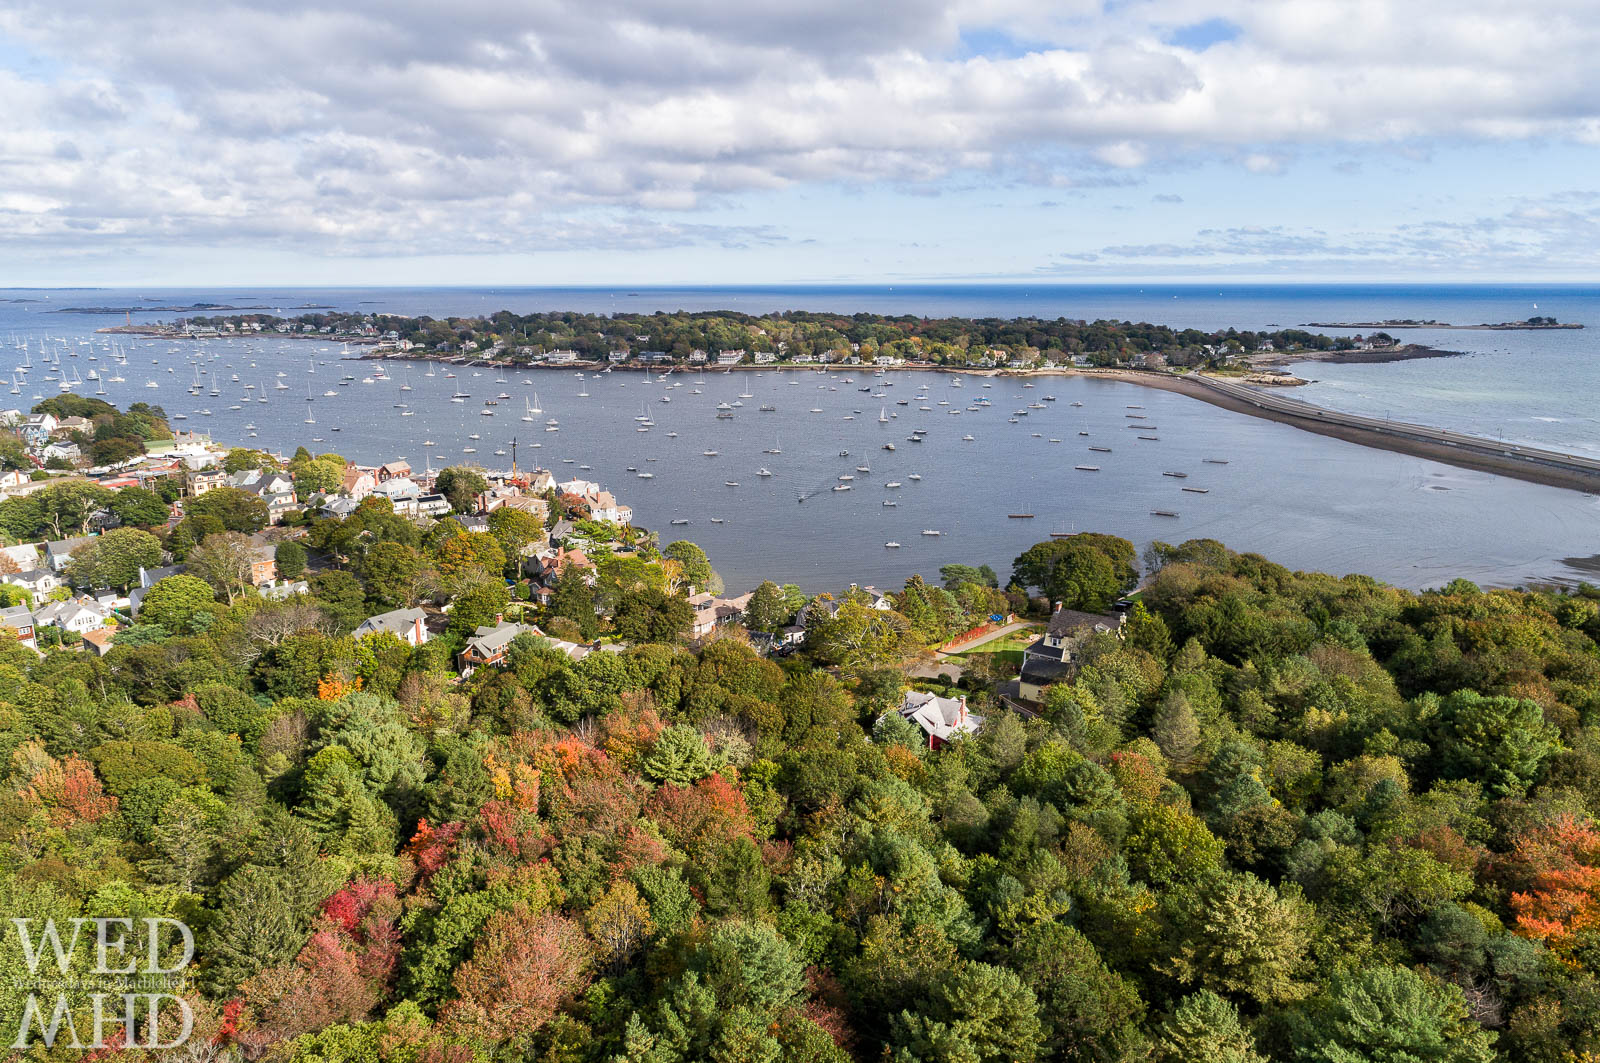 Patches of color show that fall is in the air in this mid-October aerial view over Seaside park